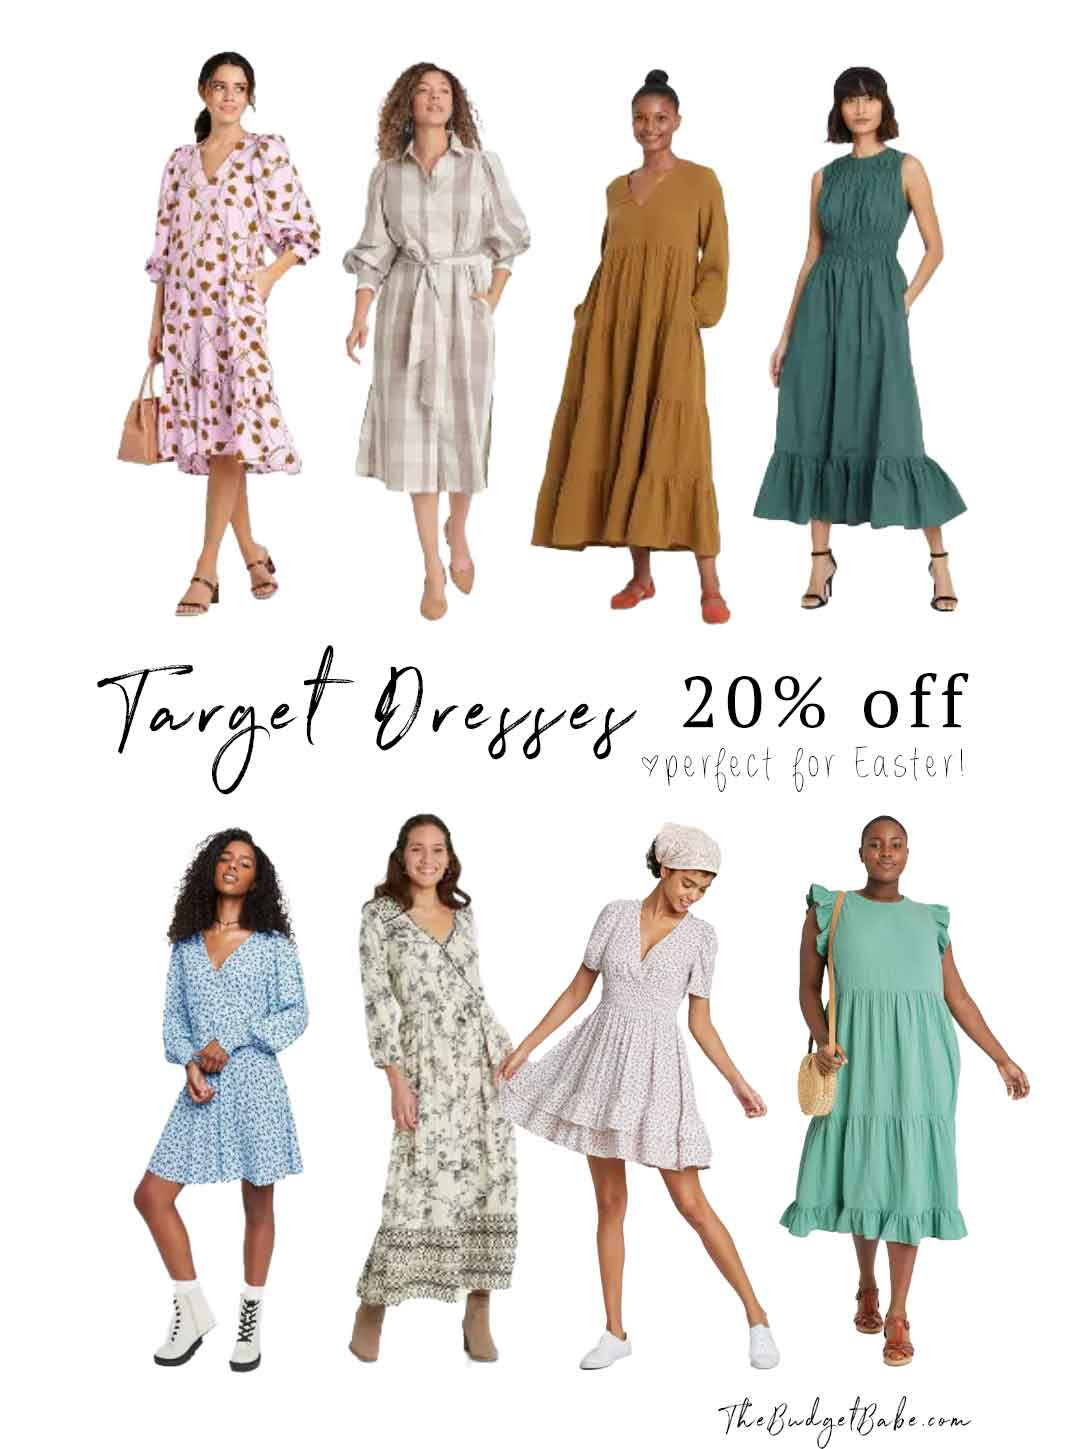 Target dresses on sale, perfect for Easter and spring!